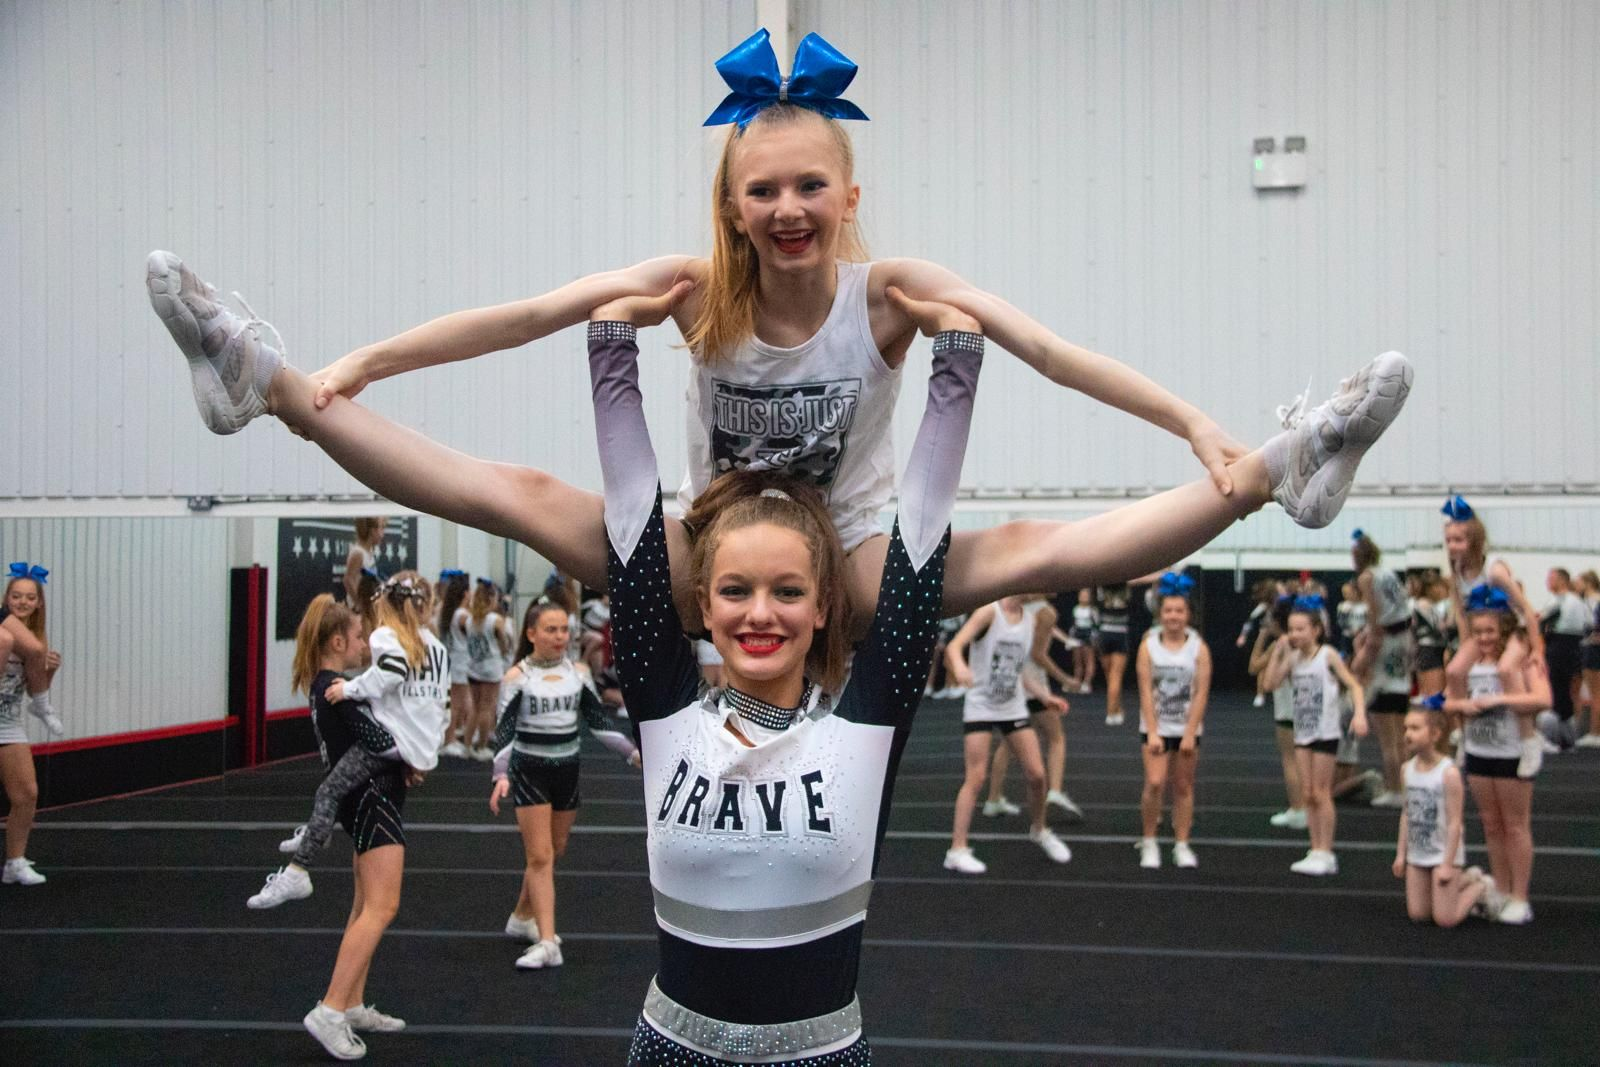 Brave Cheerleading Cheer picture poses, Cheer pictures